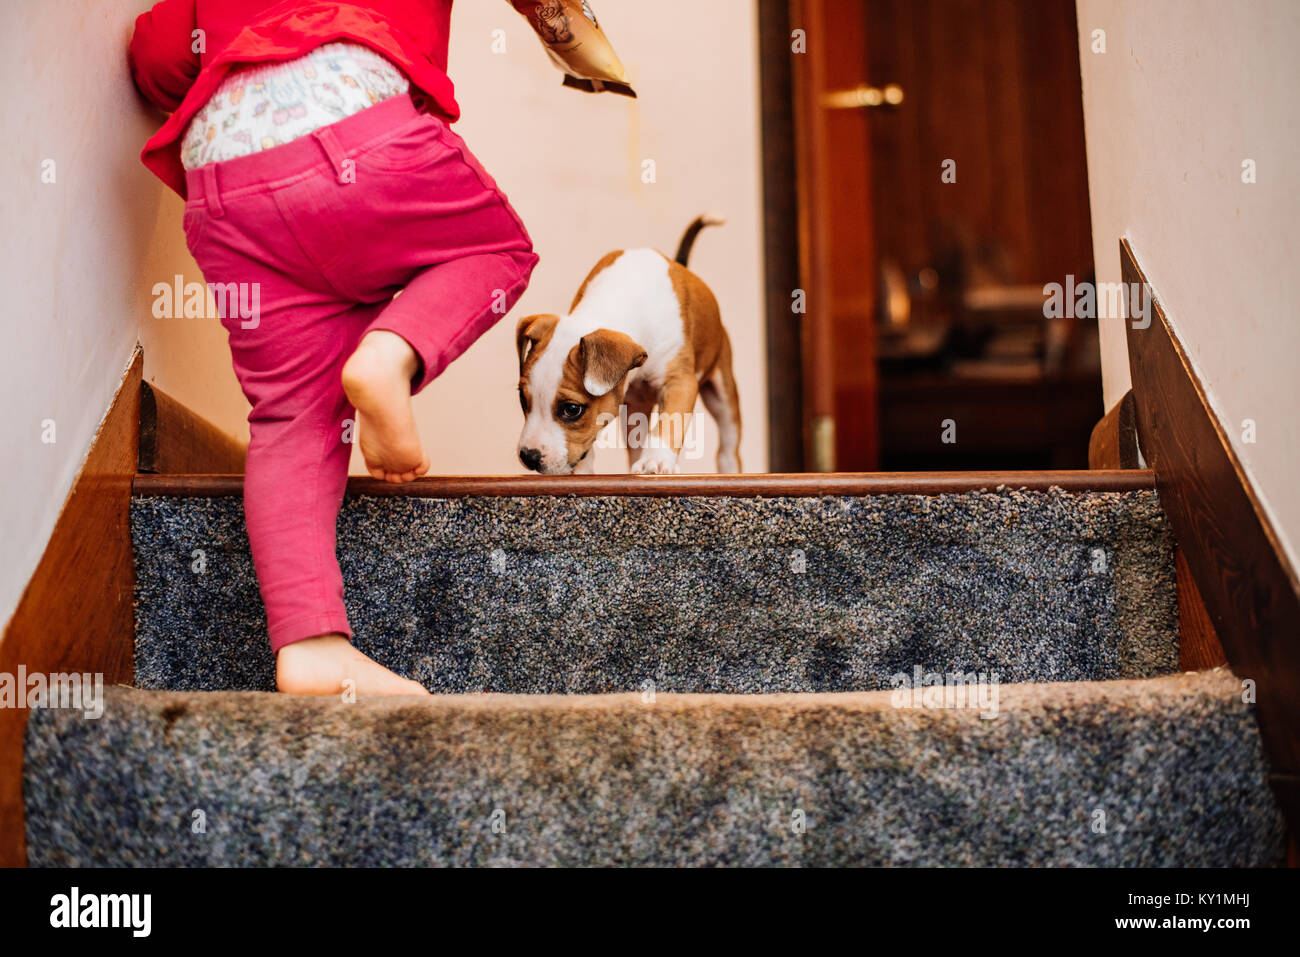 A little girl walks up a flight of stairs where a puppy sits at the top. - Stock Image